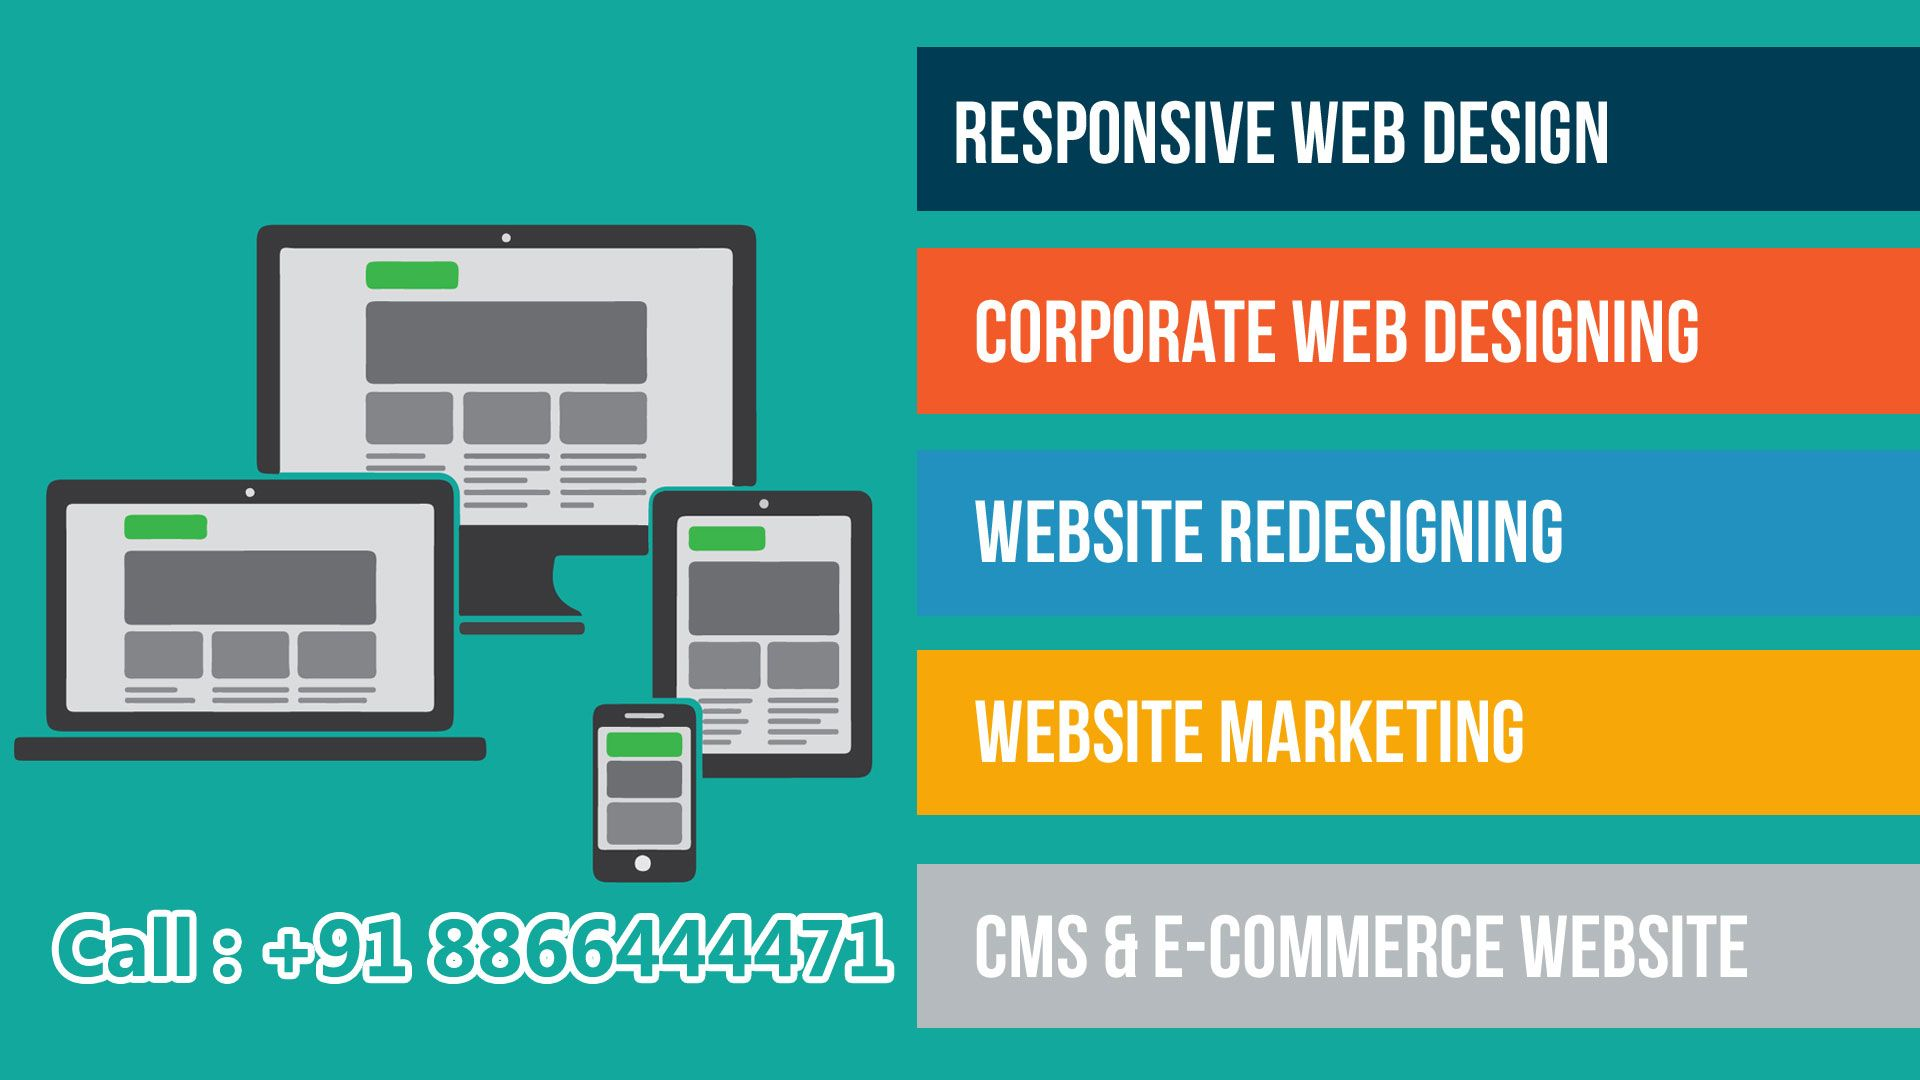 Static website @ 2999 E-commerse Website starting @ 8999 Call or